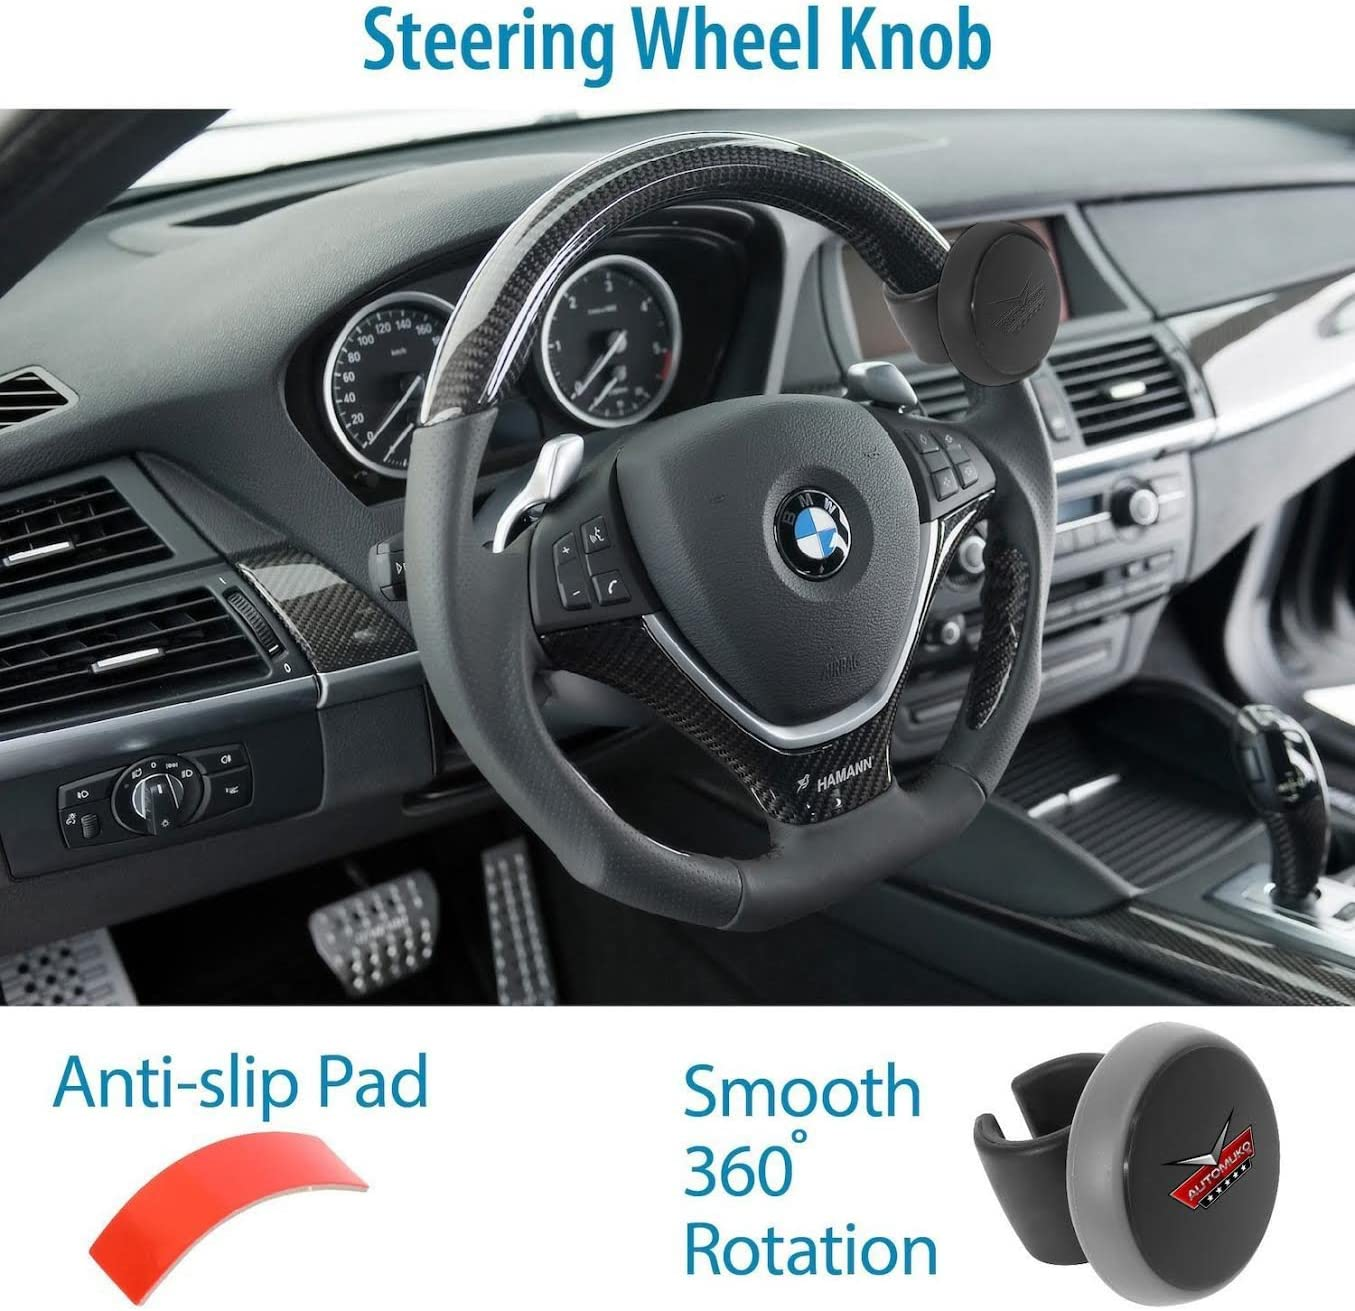 Steering Wheel Spinner, by AutoMuko Silicone Power Handle, steering wheel knob, Easy installation No tools required (Black): Automotive